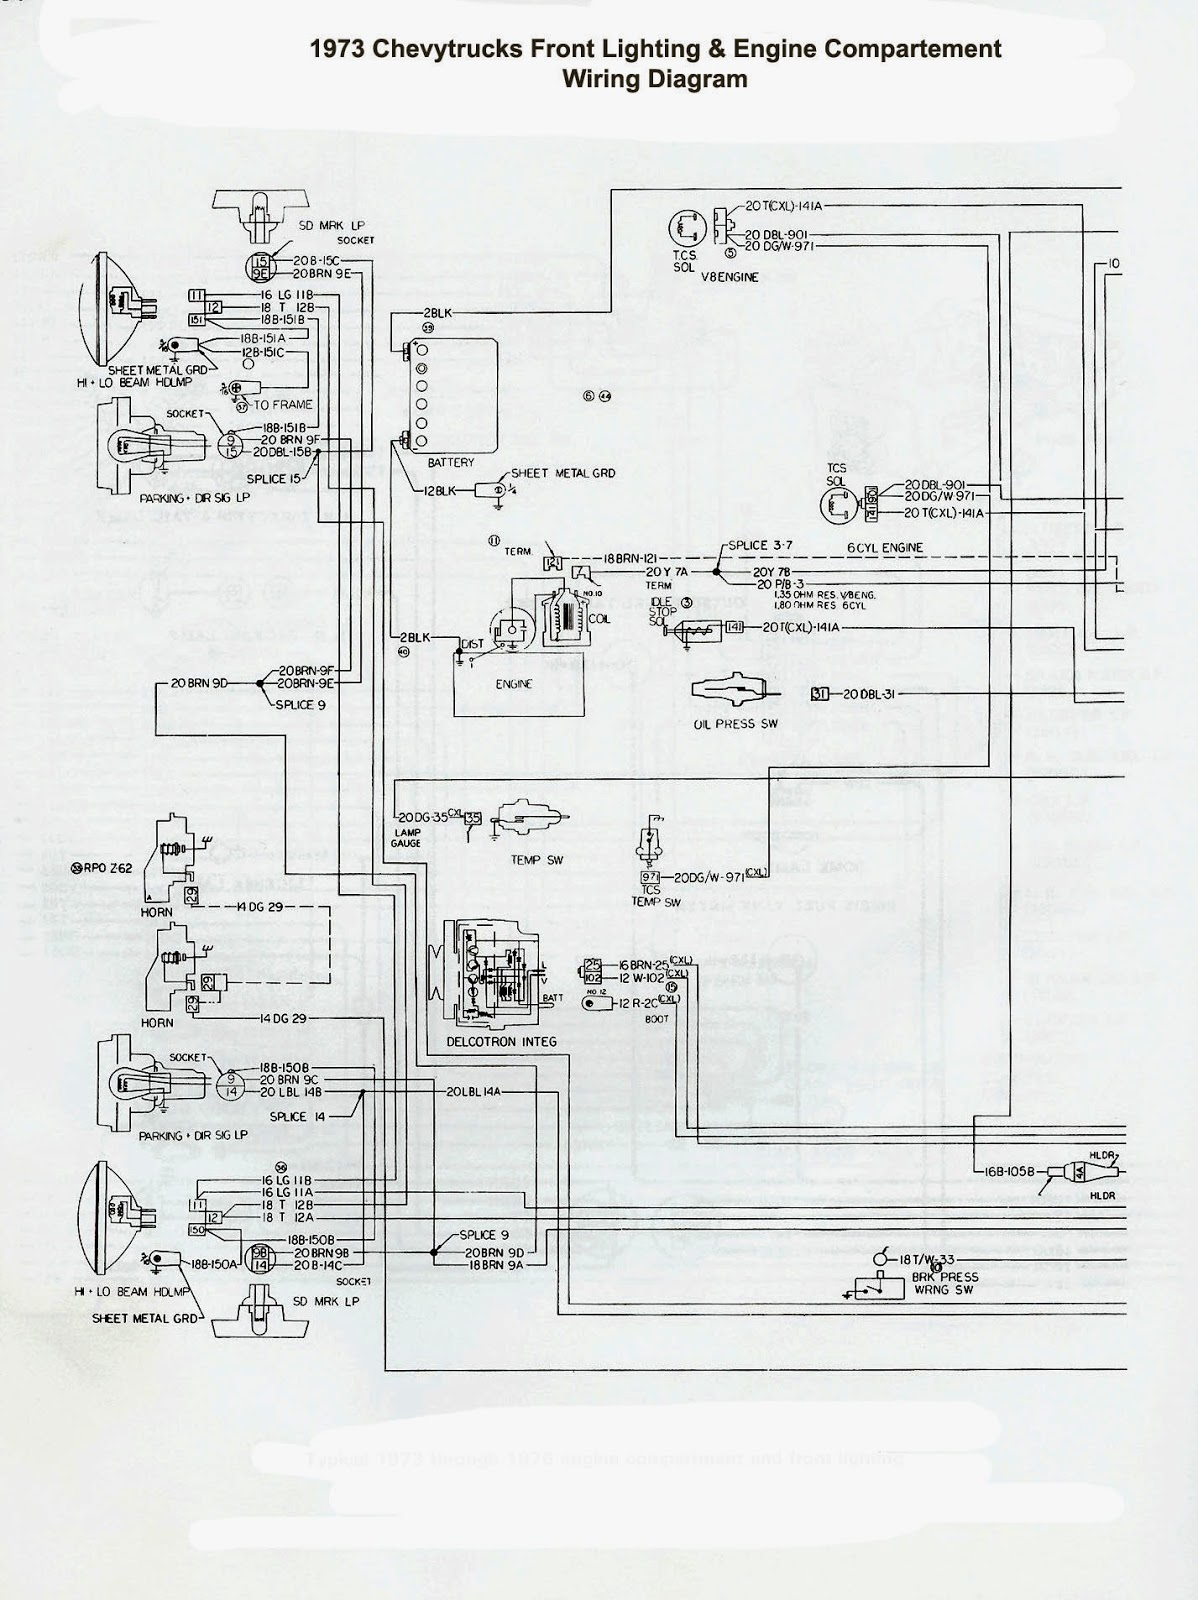 1978 Camaro Wiring Diagram Books Of Ford F150 4 9l Engine For Get Free Image About